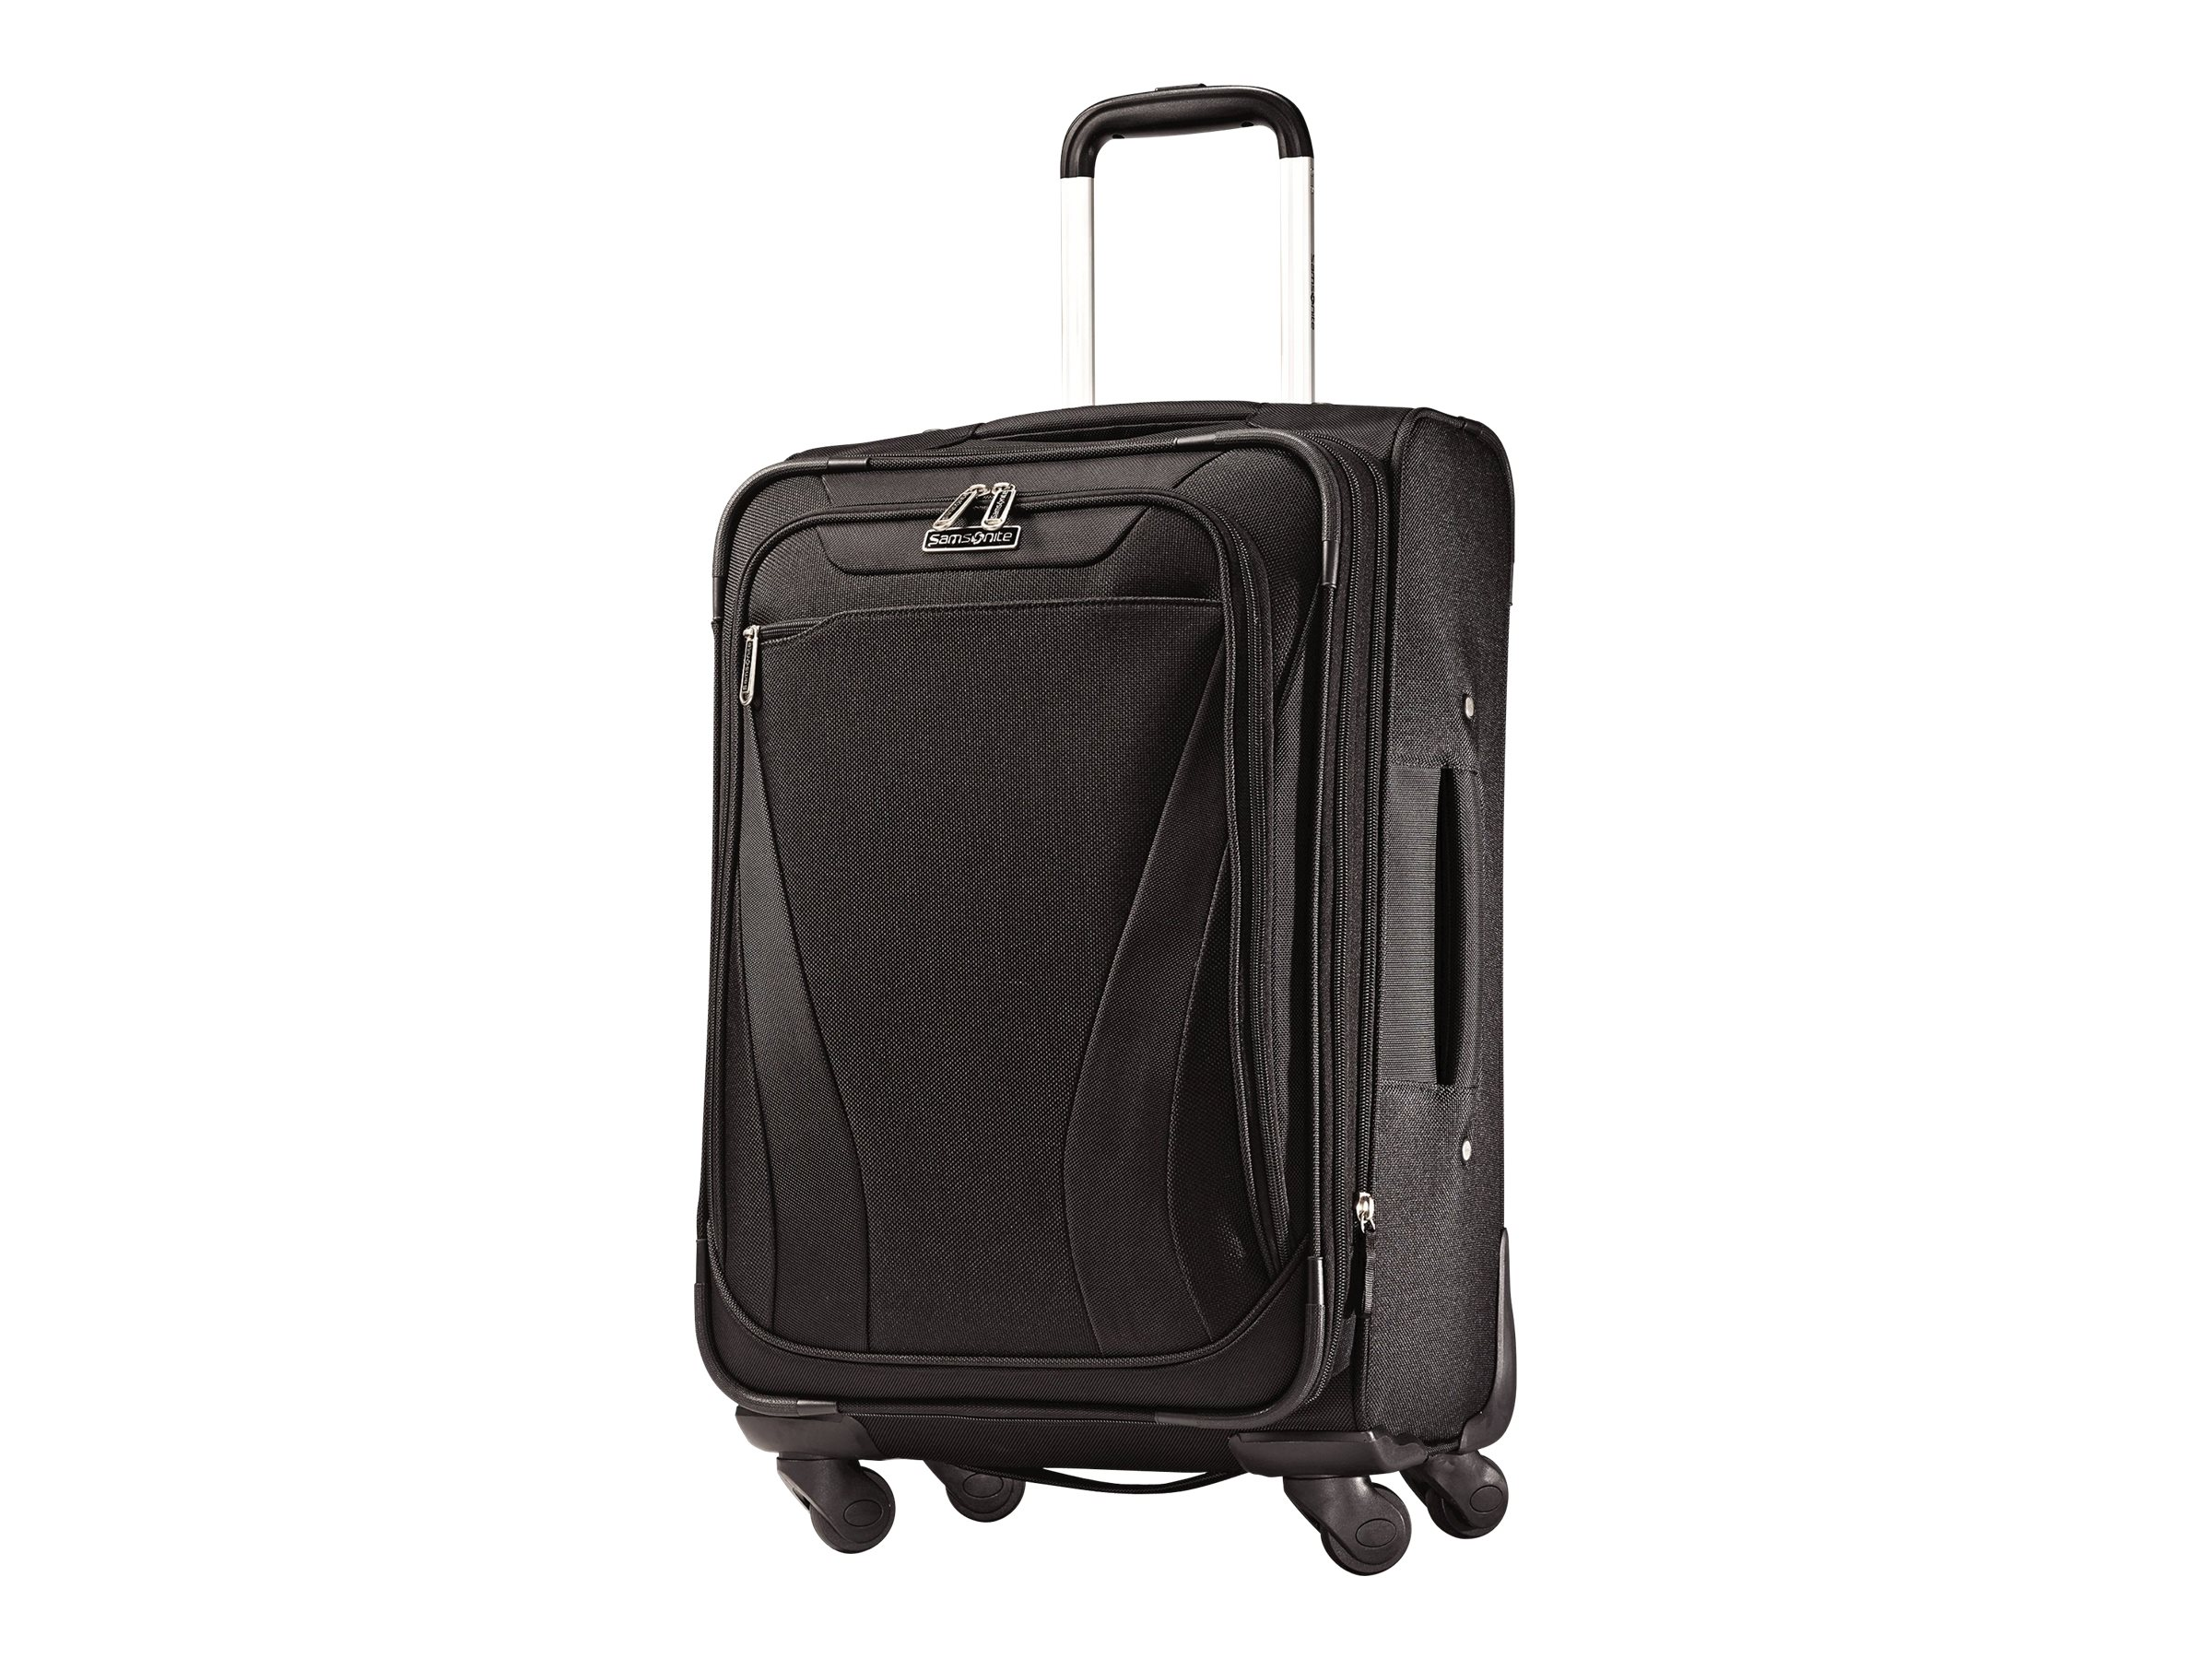 Stephen Gould Samsonite Carry-On Upright Luggage w  (2) Oversized Wheels, 58935-1041